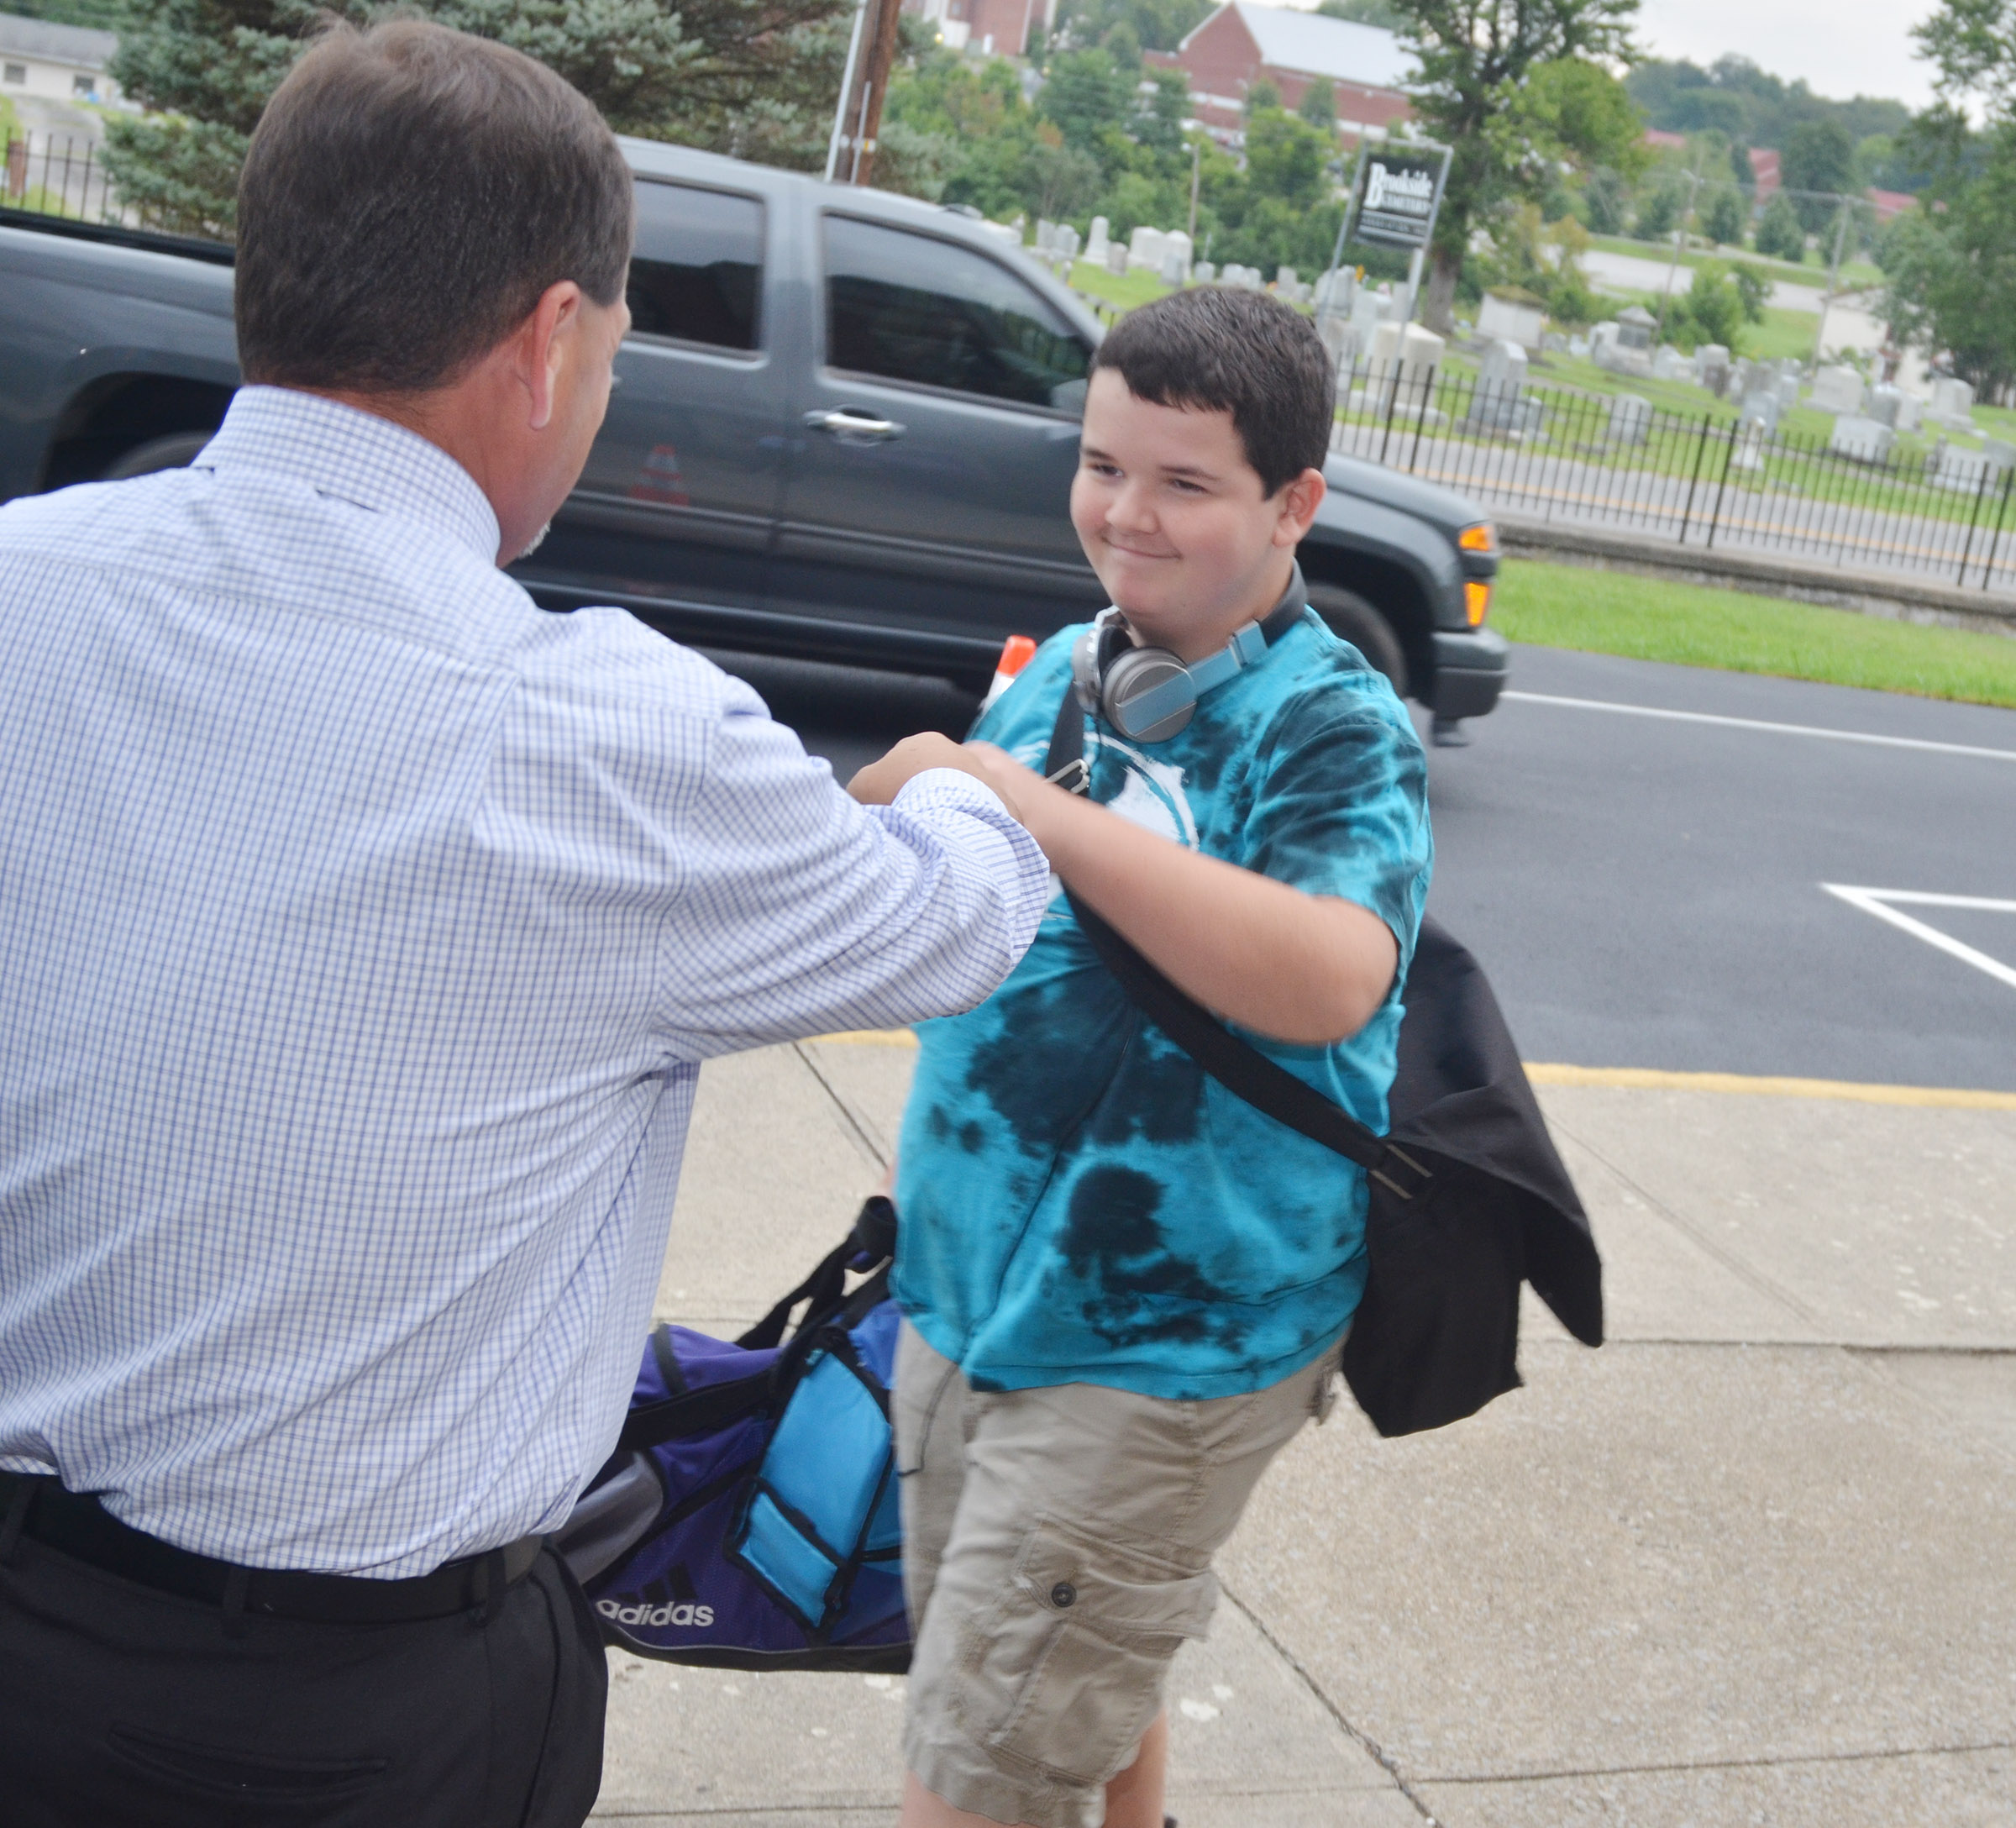 Campbellsville Independent Schools Director of Federal Programs Ricky Hunt greets his son, Adin, on his second day of eighth grade.